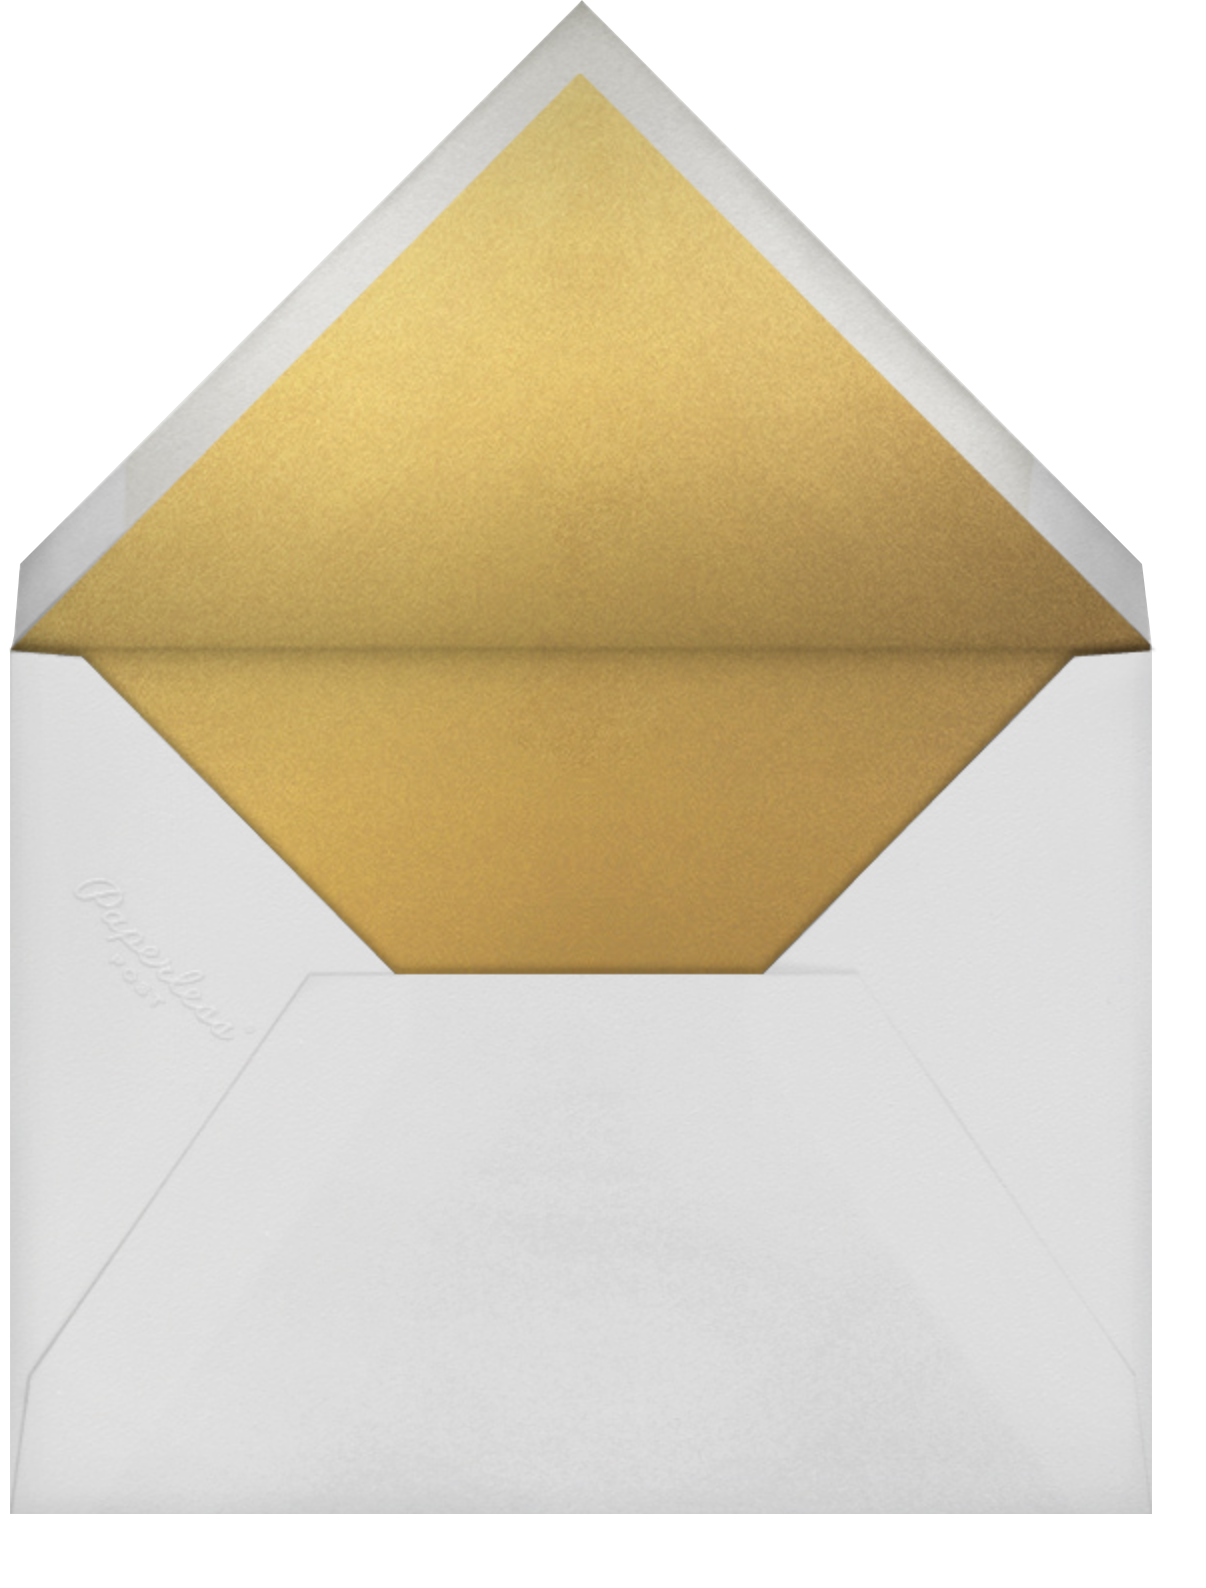 Inner Circle - Paperless Post - Engagement party - envelope back